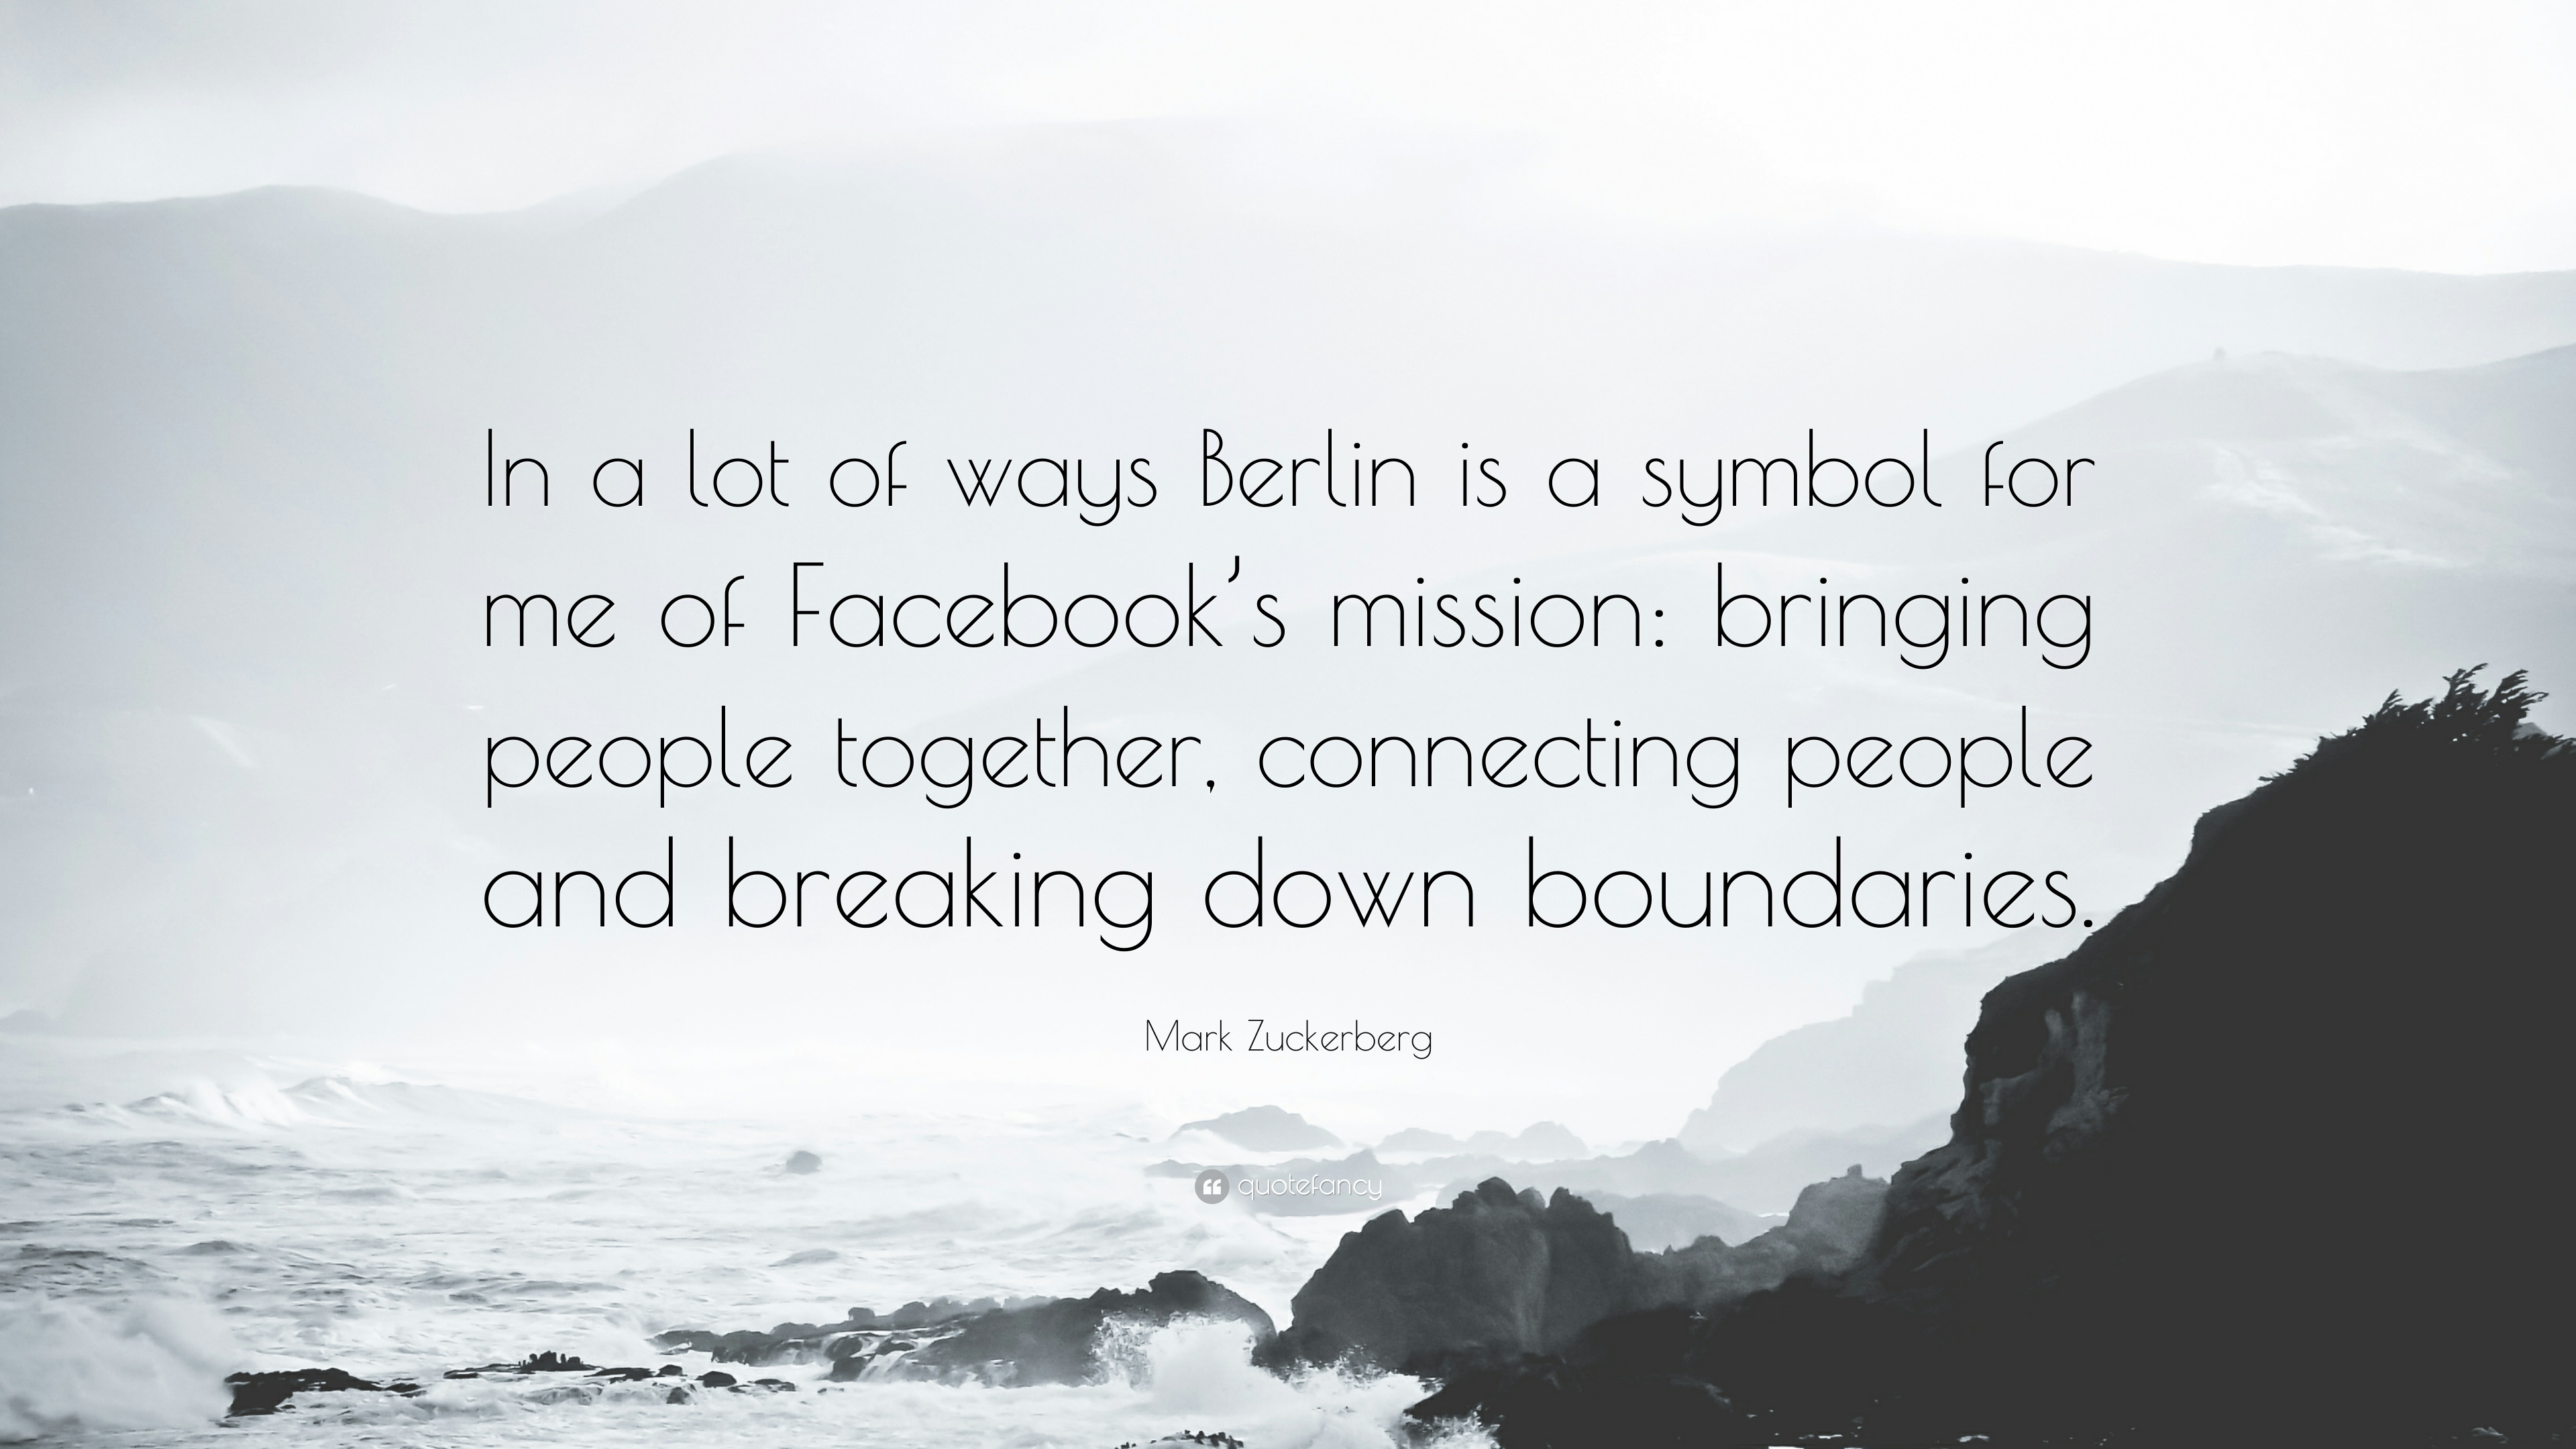 Mark zuckerberg quote in a lot of ways berlin is a symbol for me mark zuckerberg quote in a lot of ways berlin is a symbol for me biocorpaavc Image collections